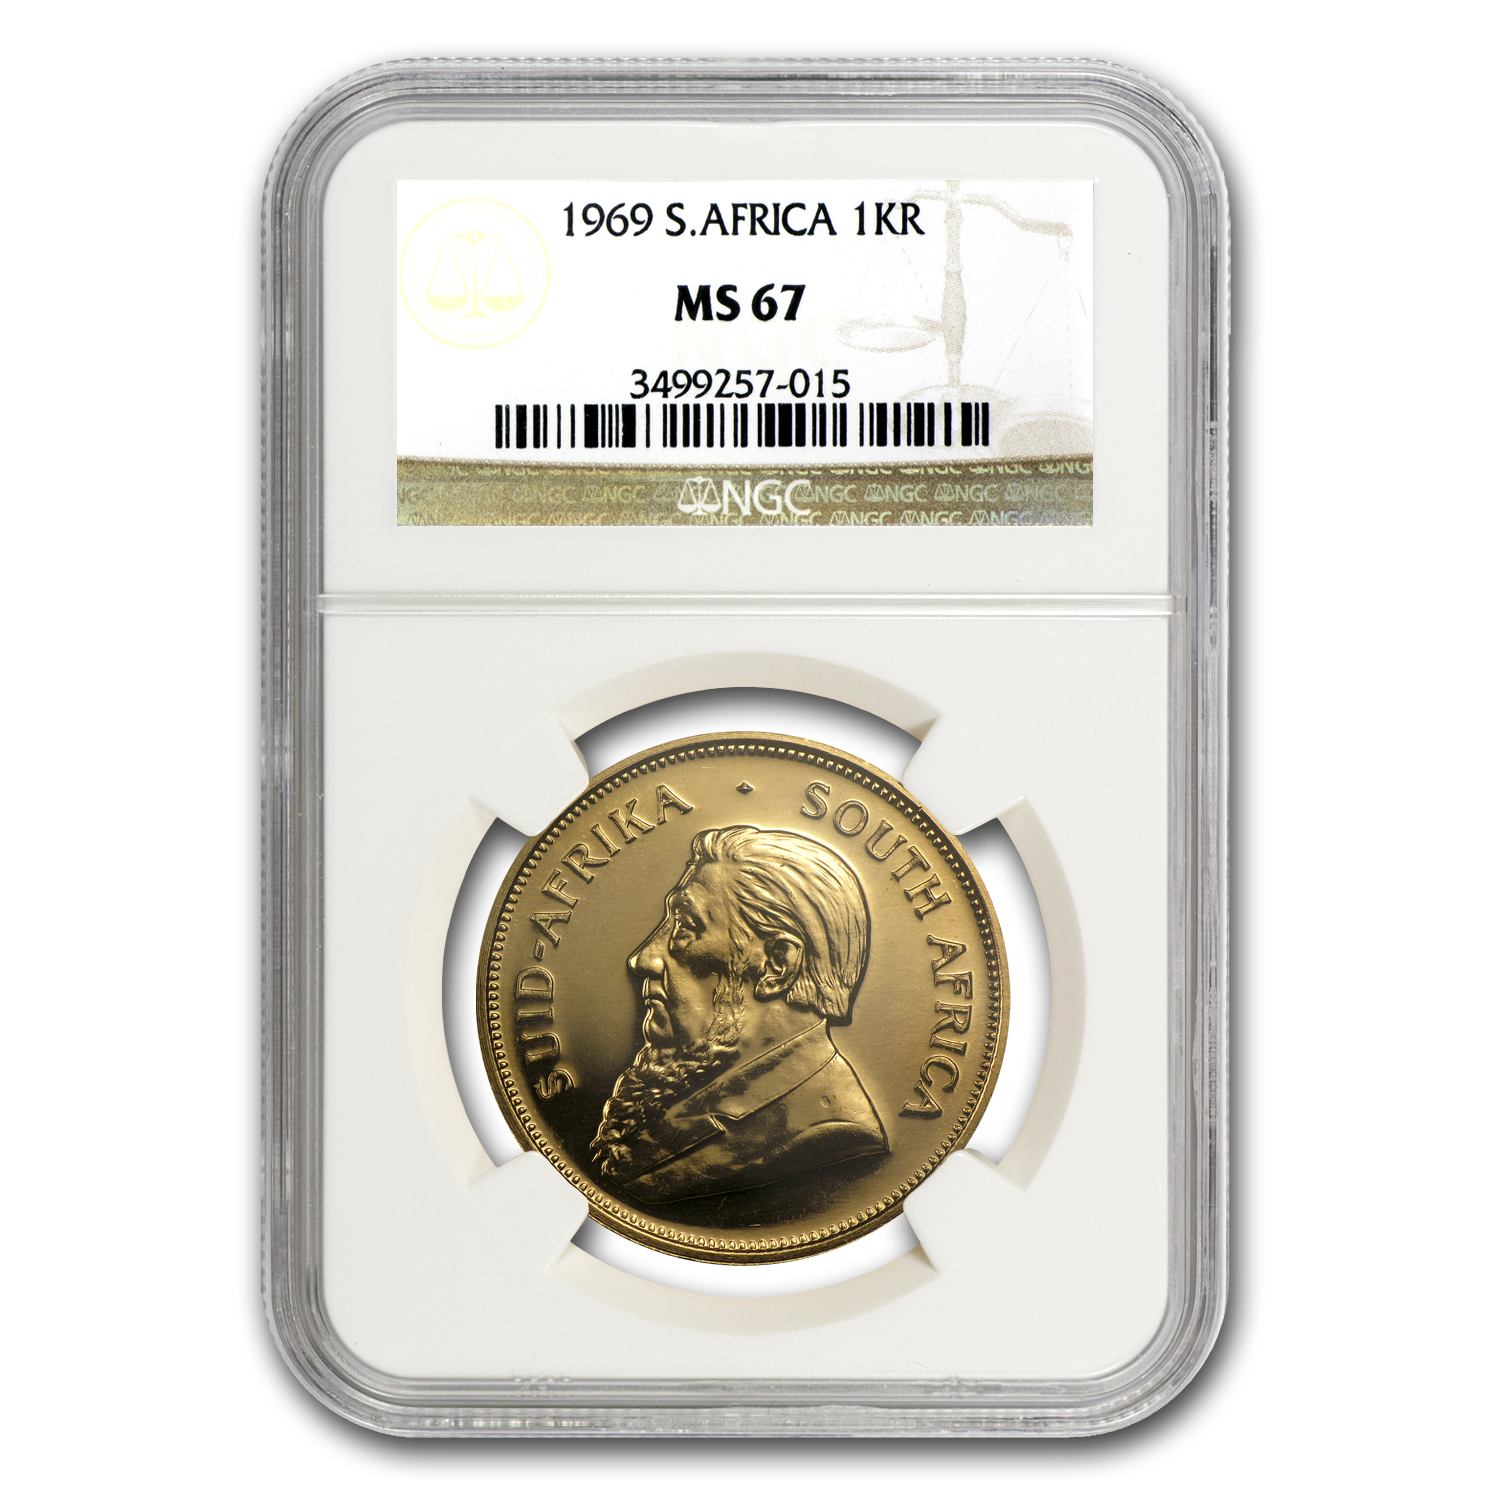 1969 1 oz Gold South African Krugerrand MS-67 NGC